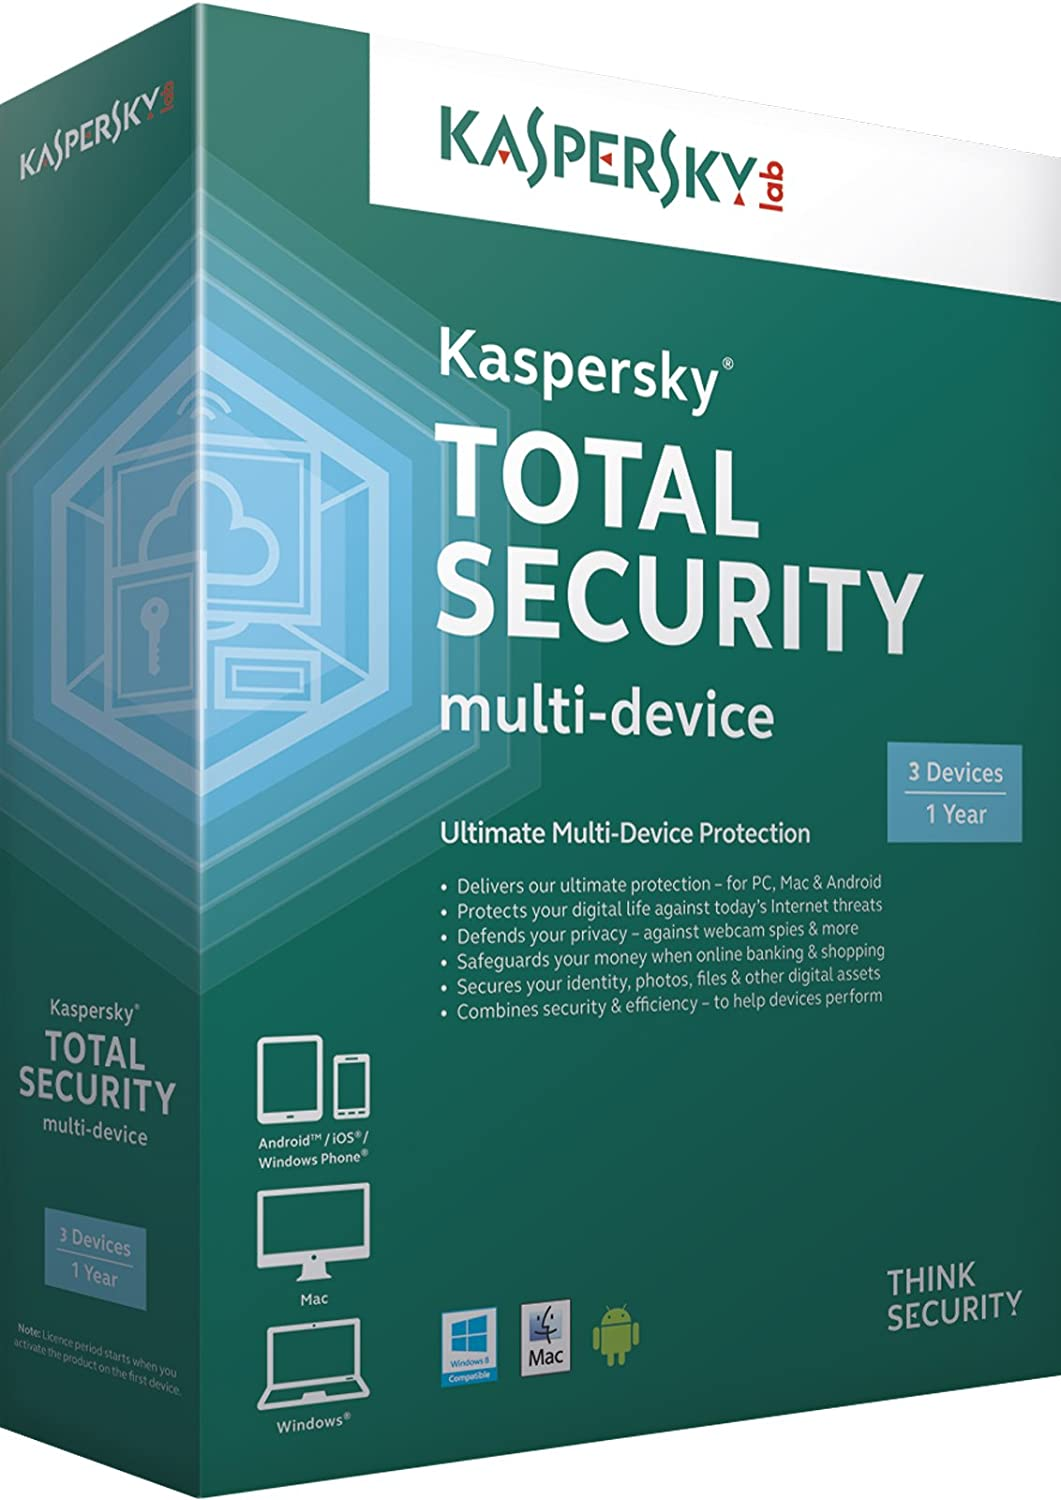 Kaspersky Total Security - multi-device 3 Users - 1 Year